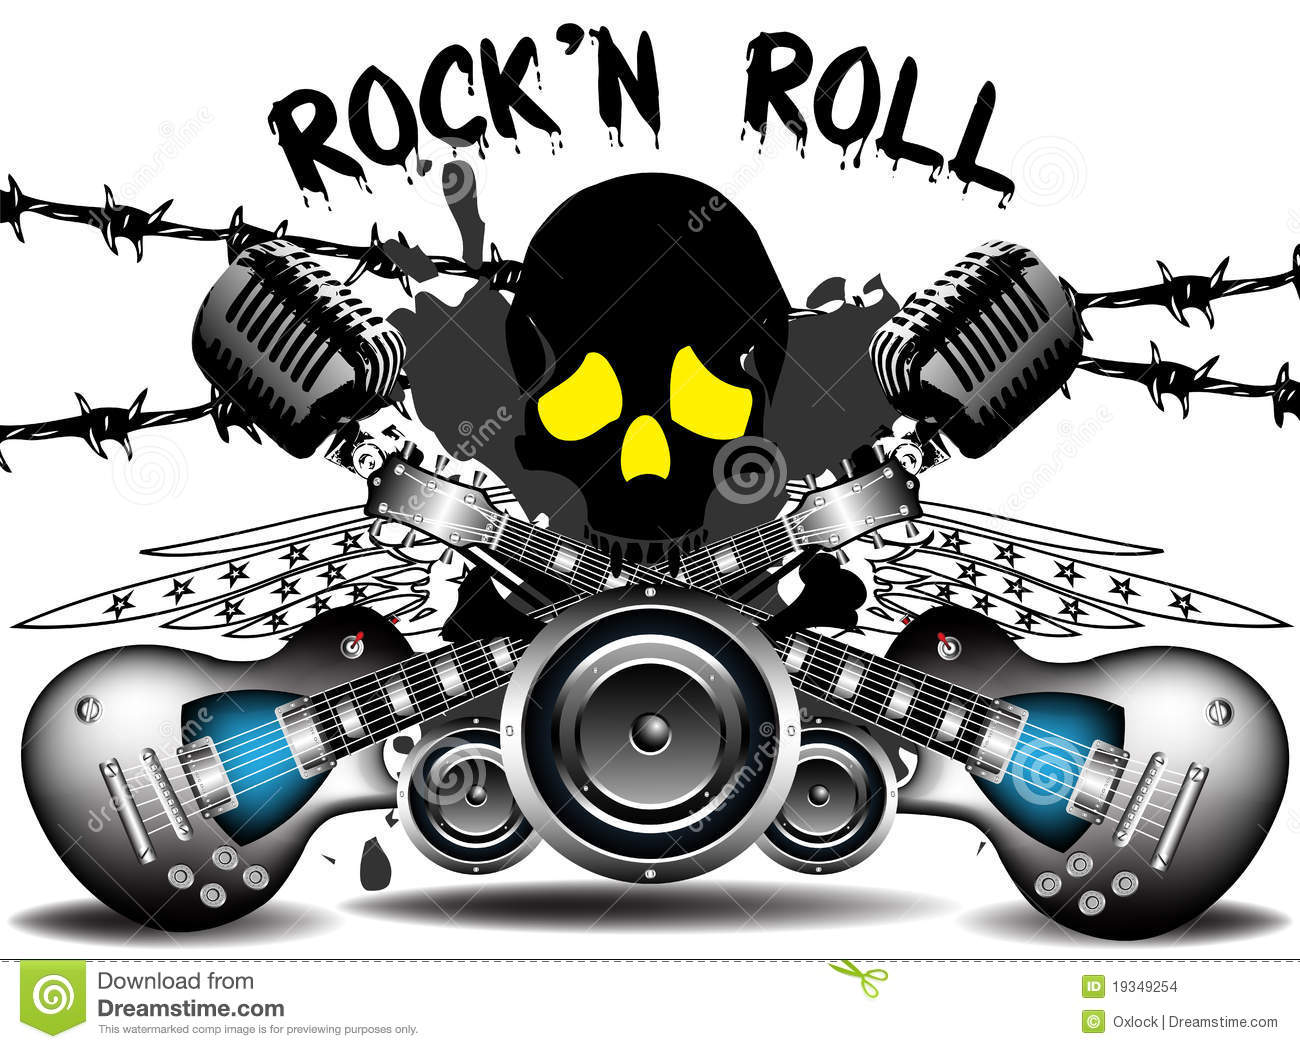 ... , barbed wire, wings and powerful loudspeakers. Rock'n Roll concept